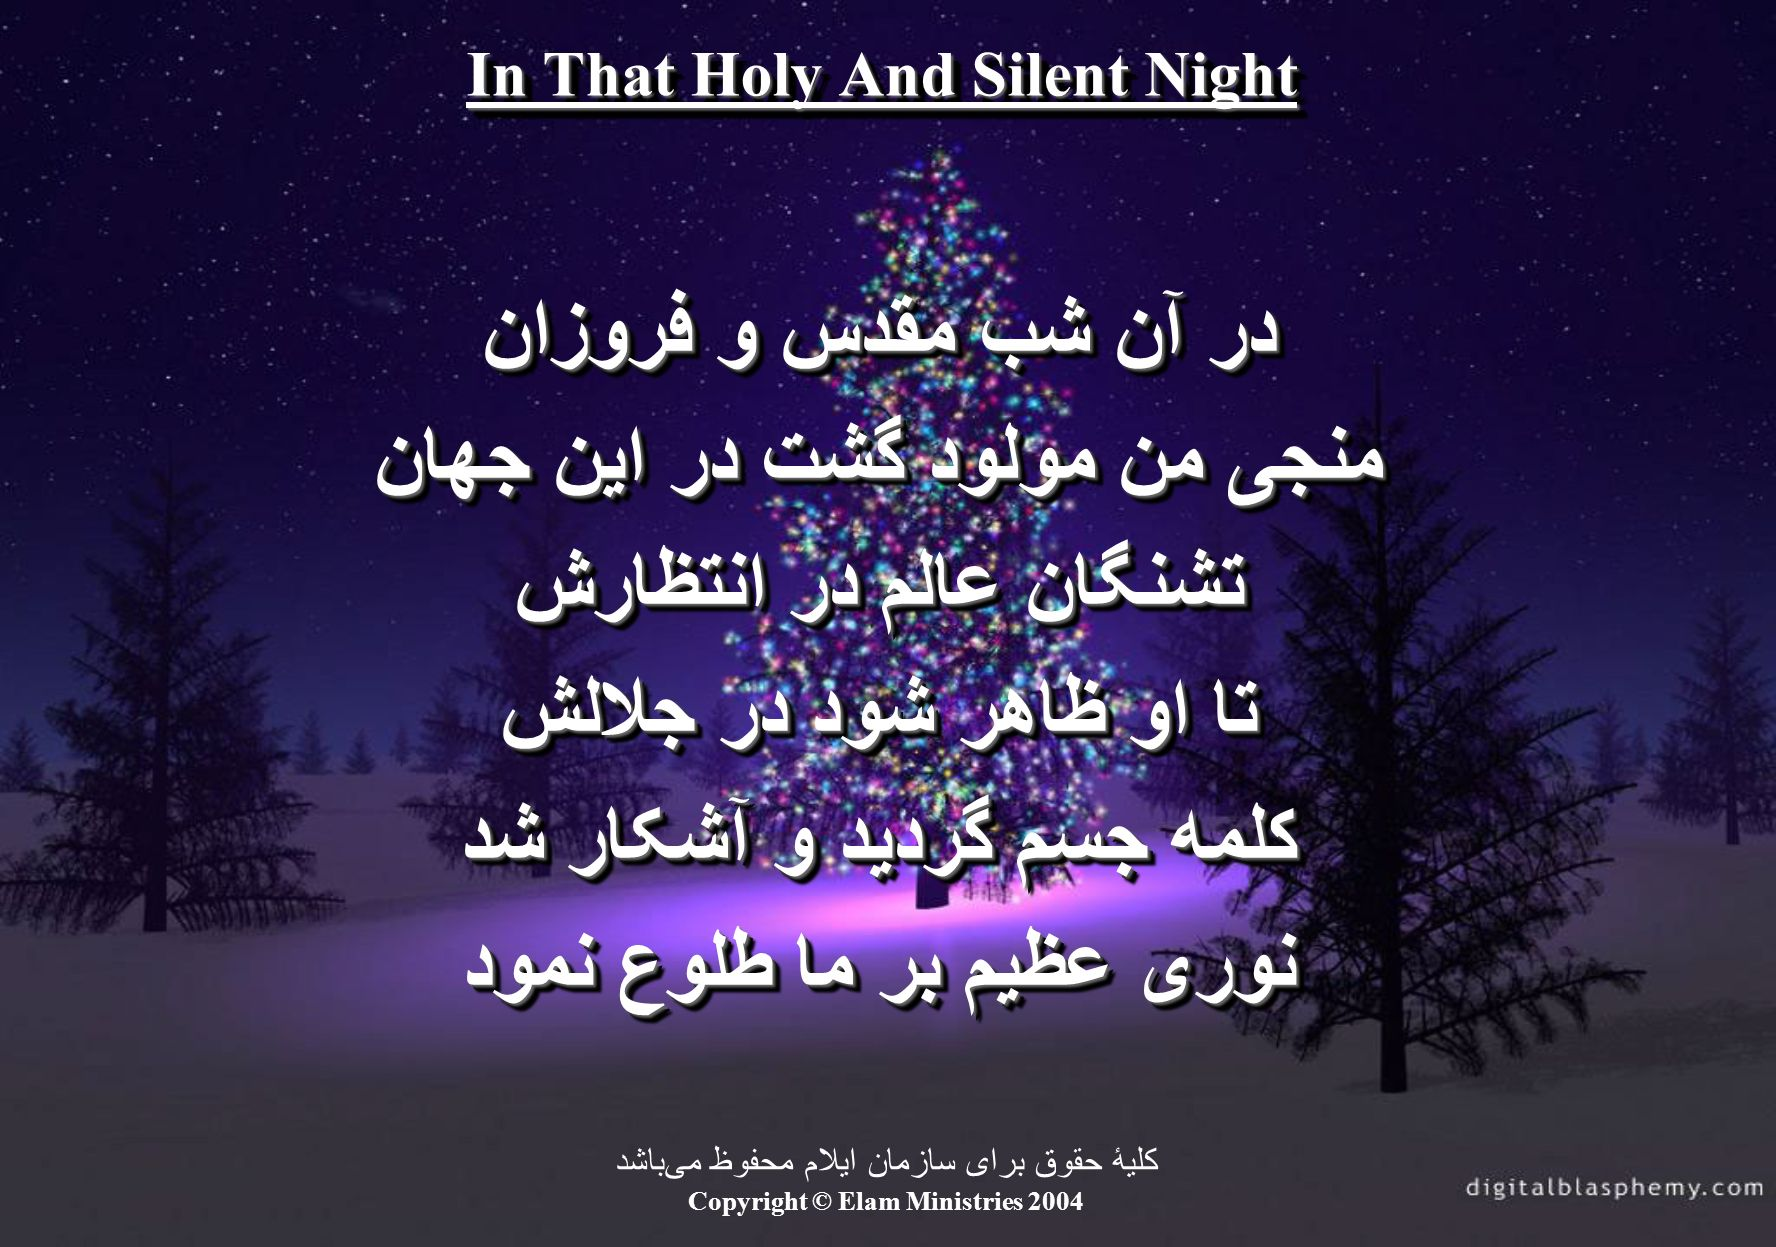 In That Holy And Silent Night